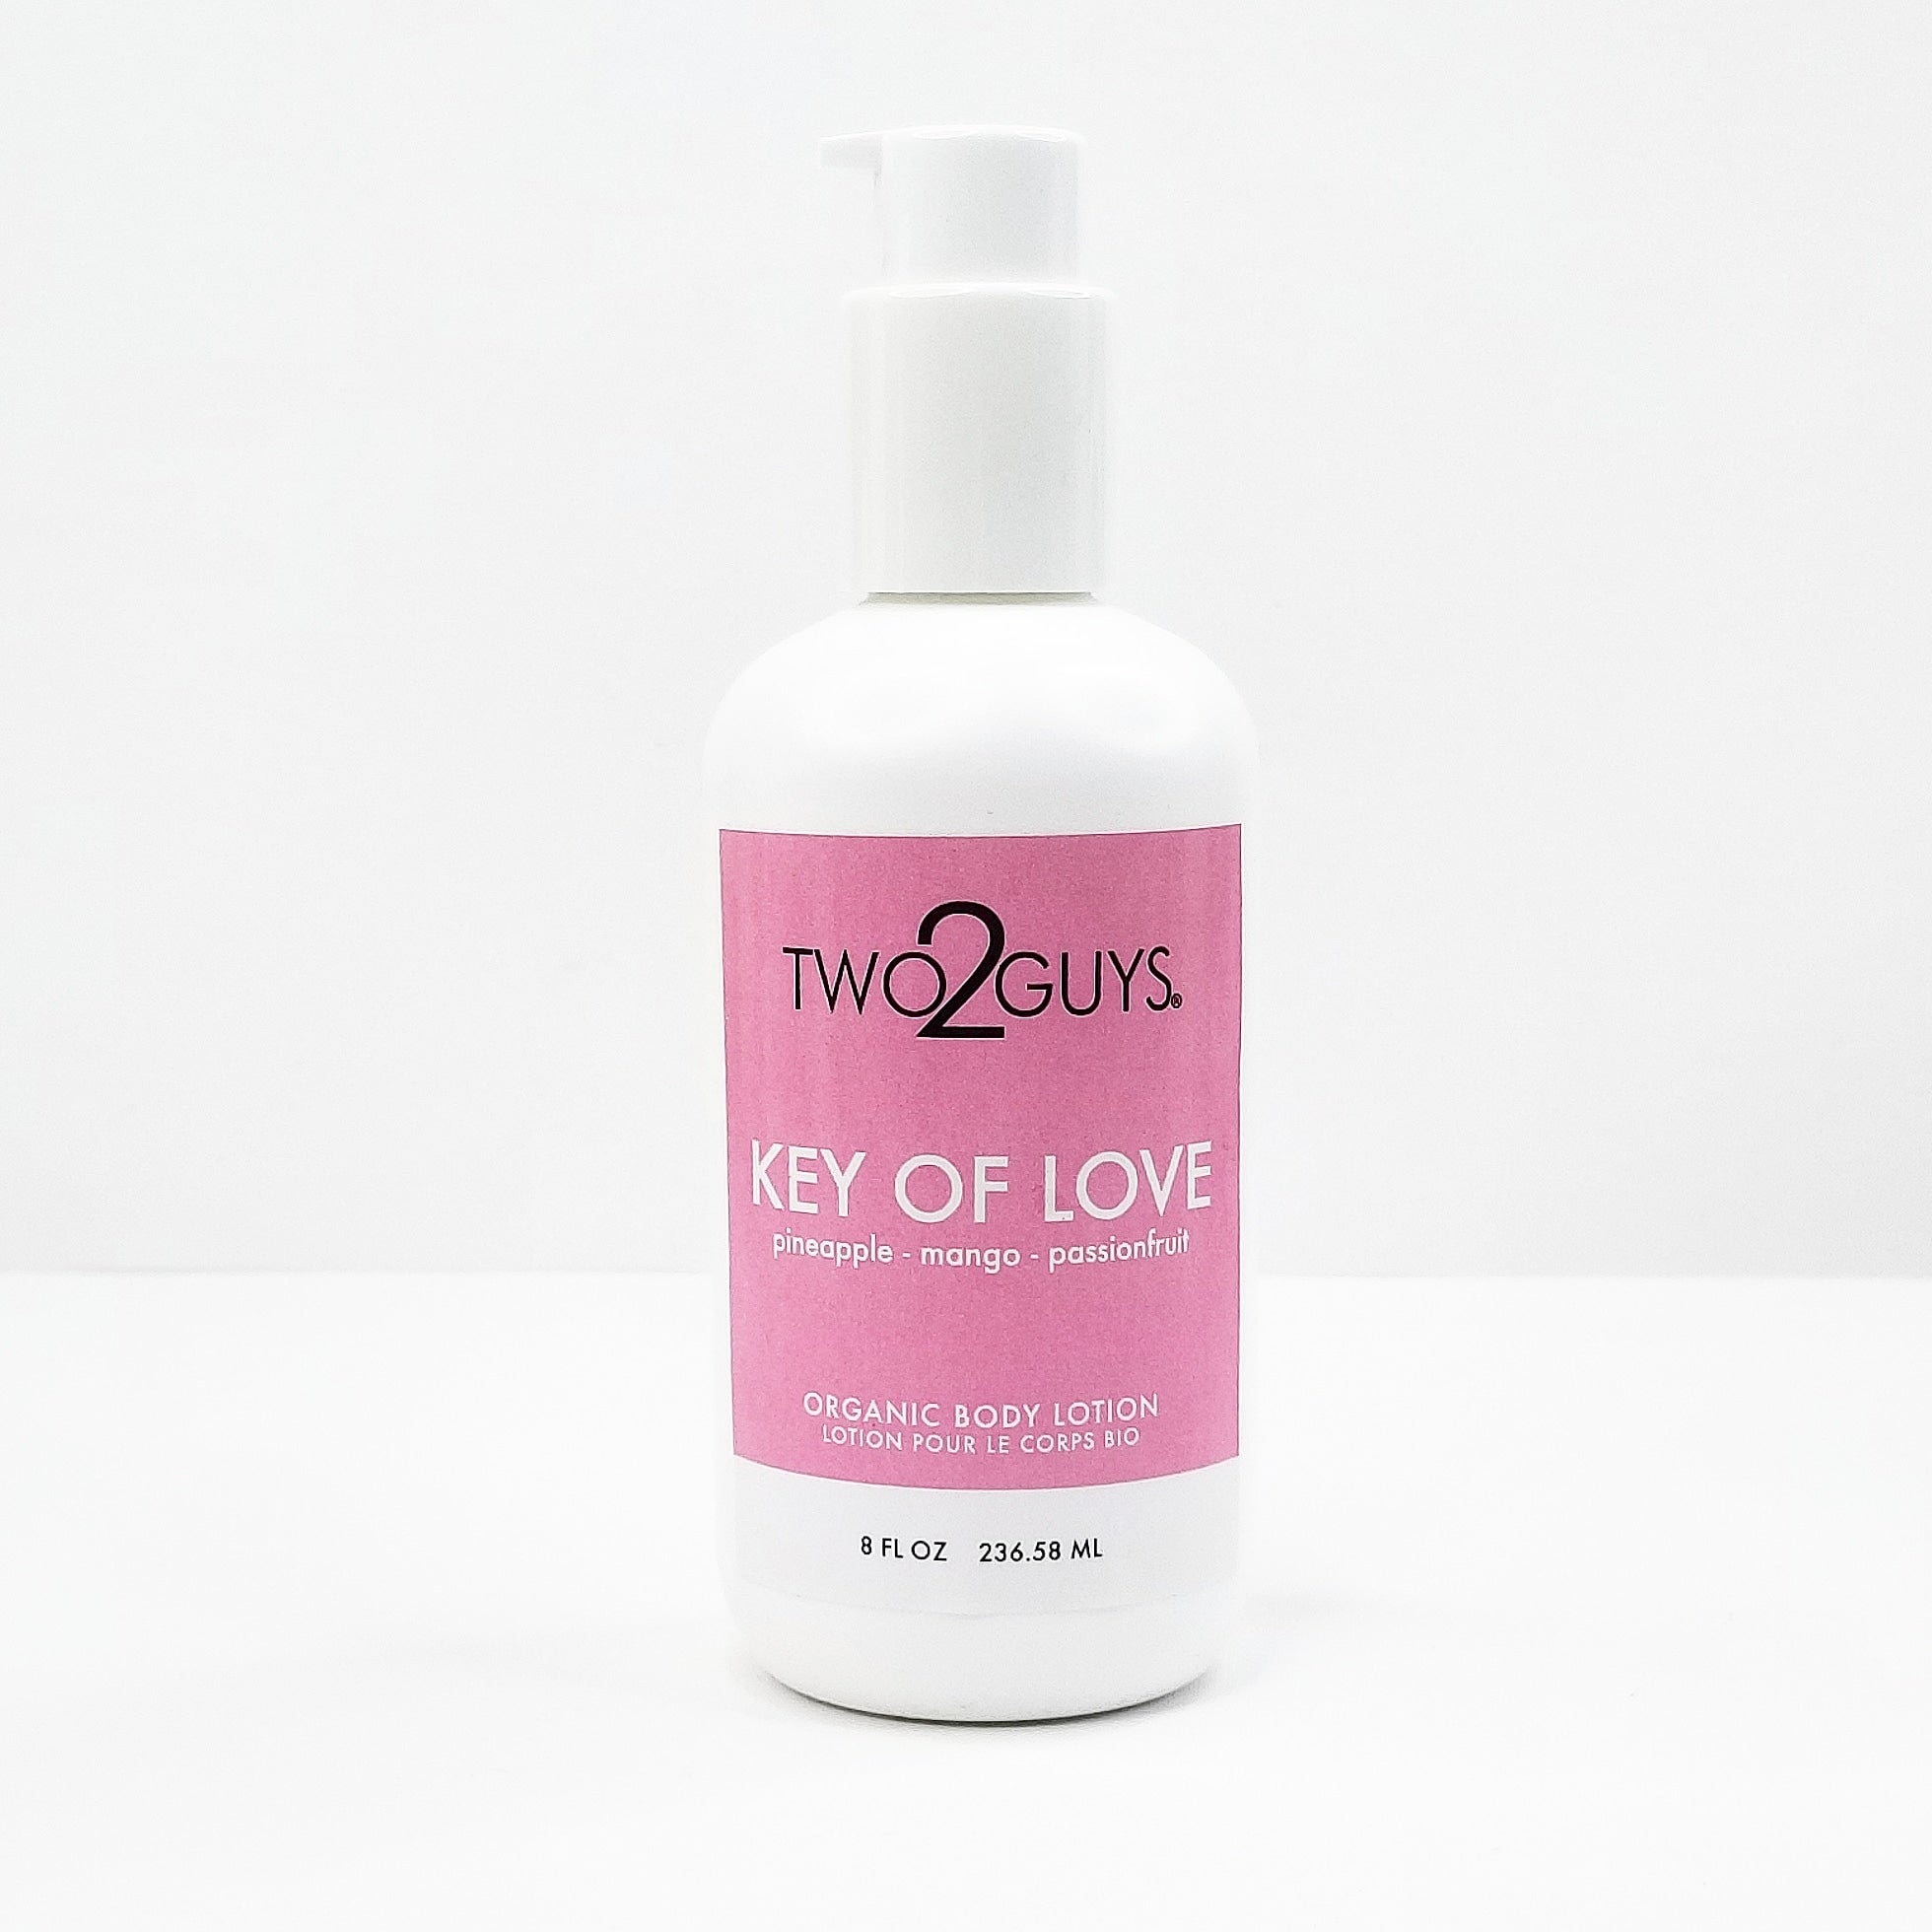 KEY OF LOVE Organic Body Lotion